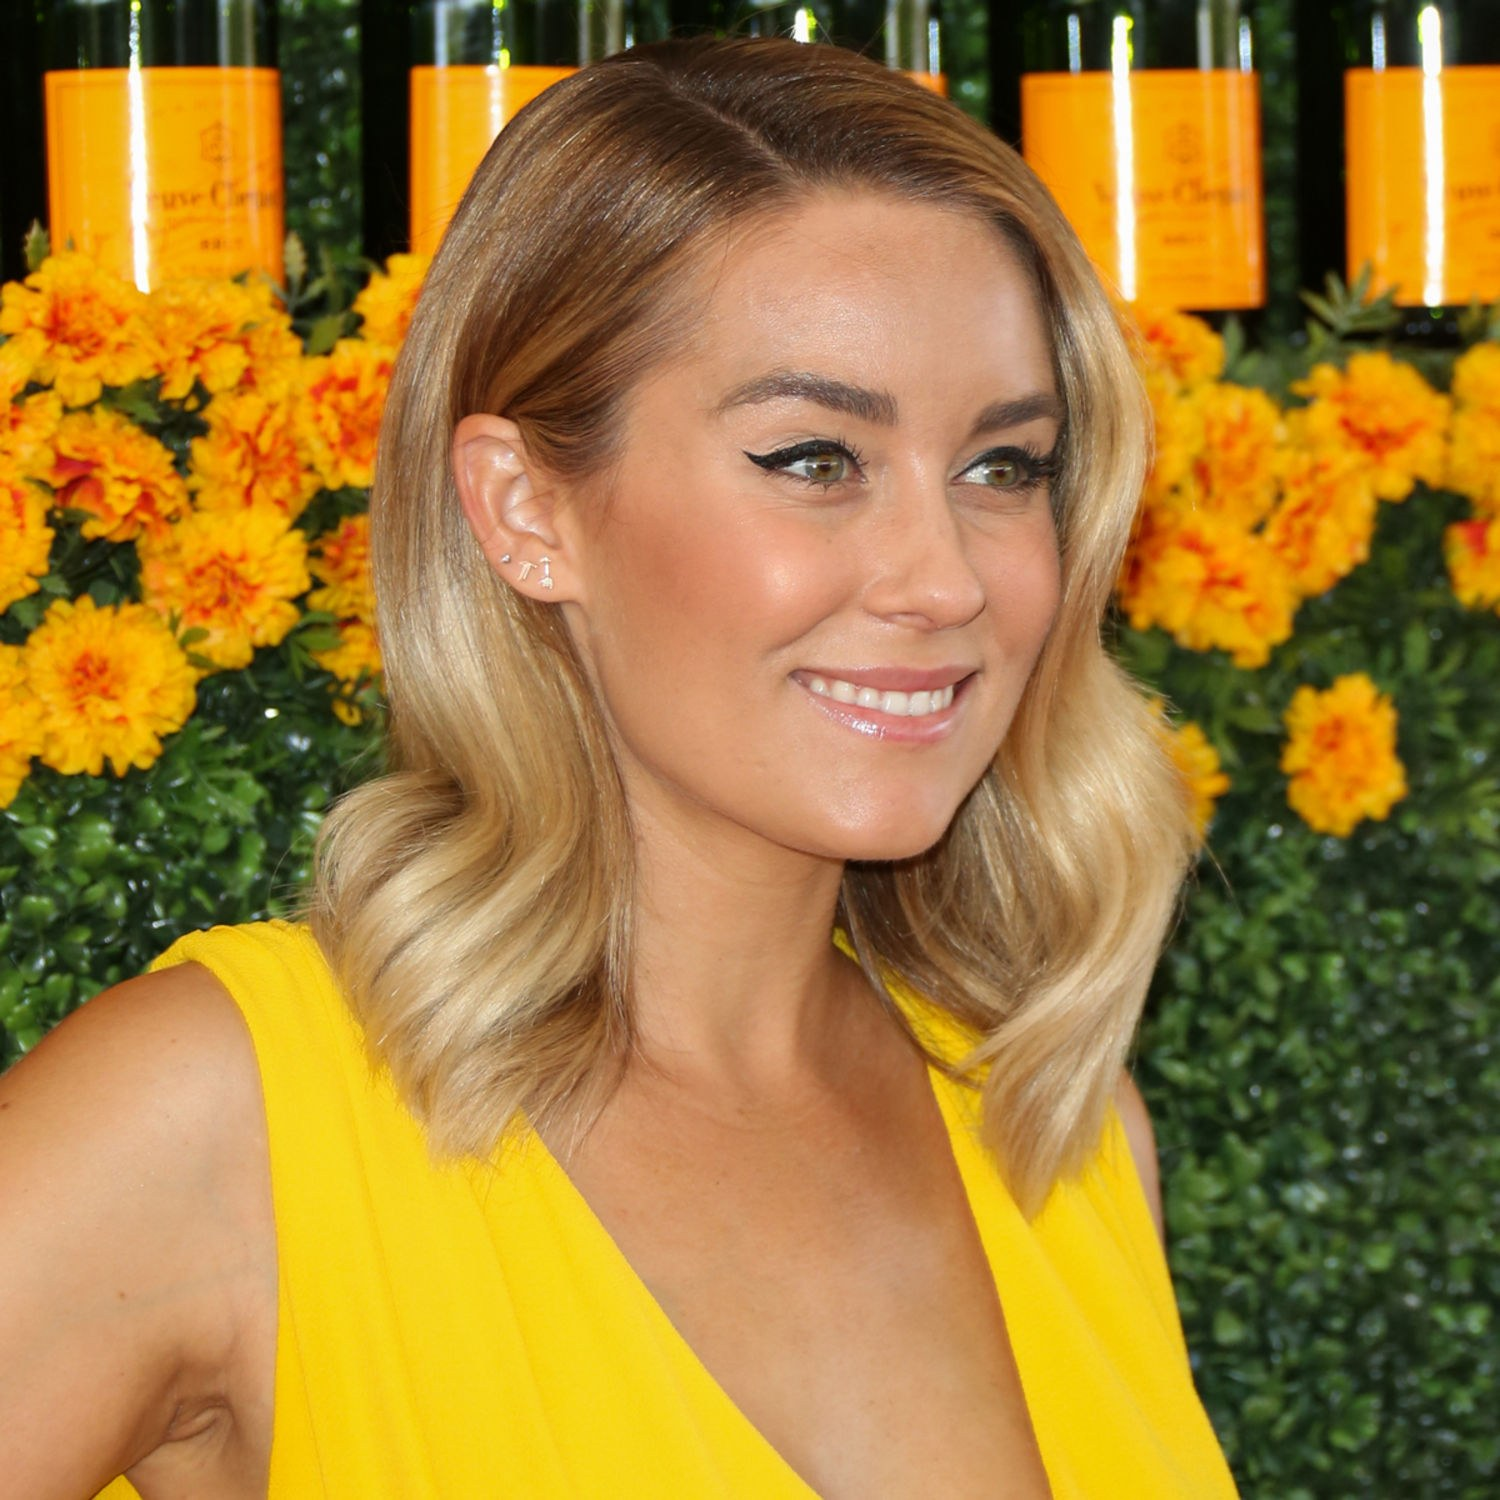 What is not to love about LC's style? Her fresh spring cut looks stellar is this casual smoothed out wave, which pairs amazing with her cat eye liner. I would wear this look to a gala or a casual evening wedding. Fun + simply stunning.